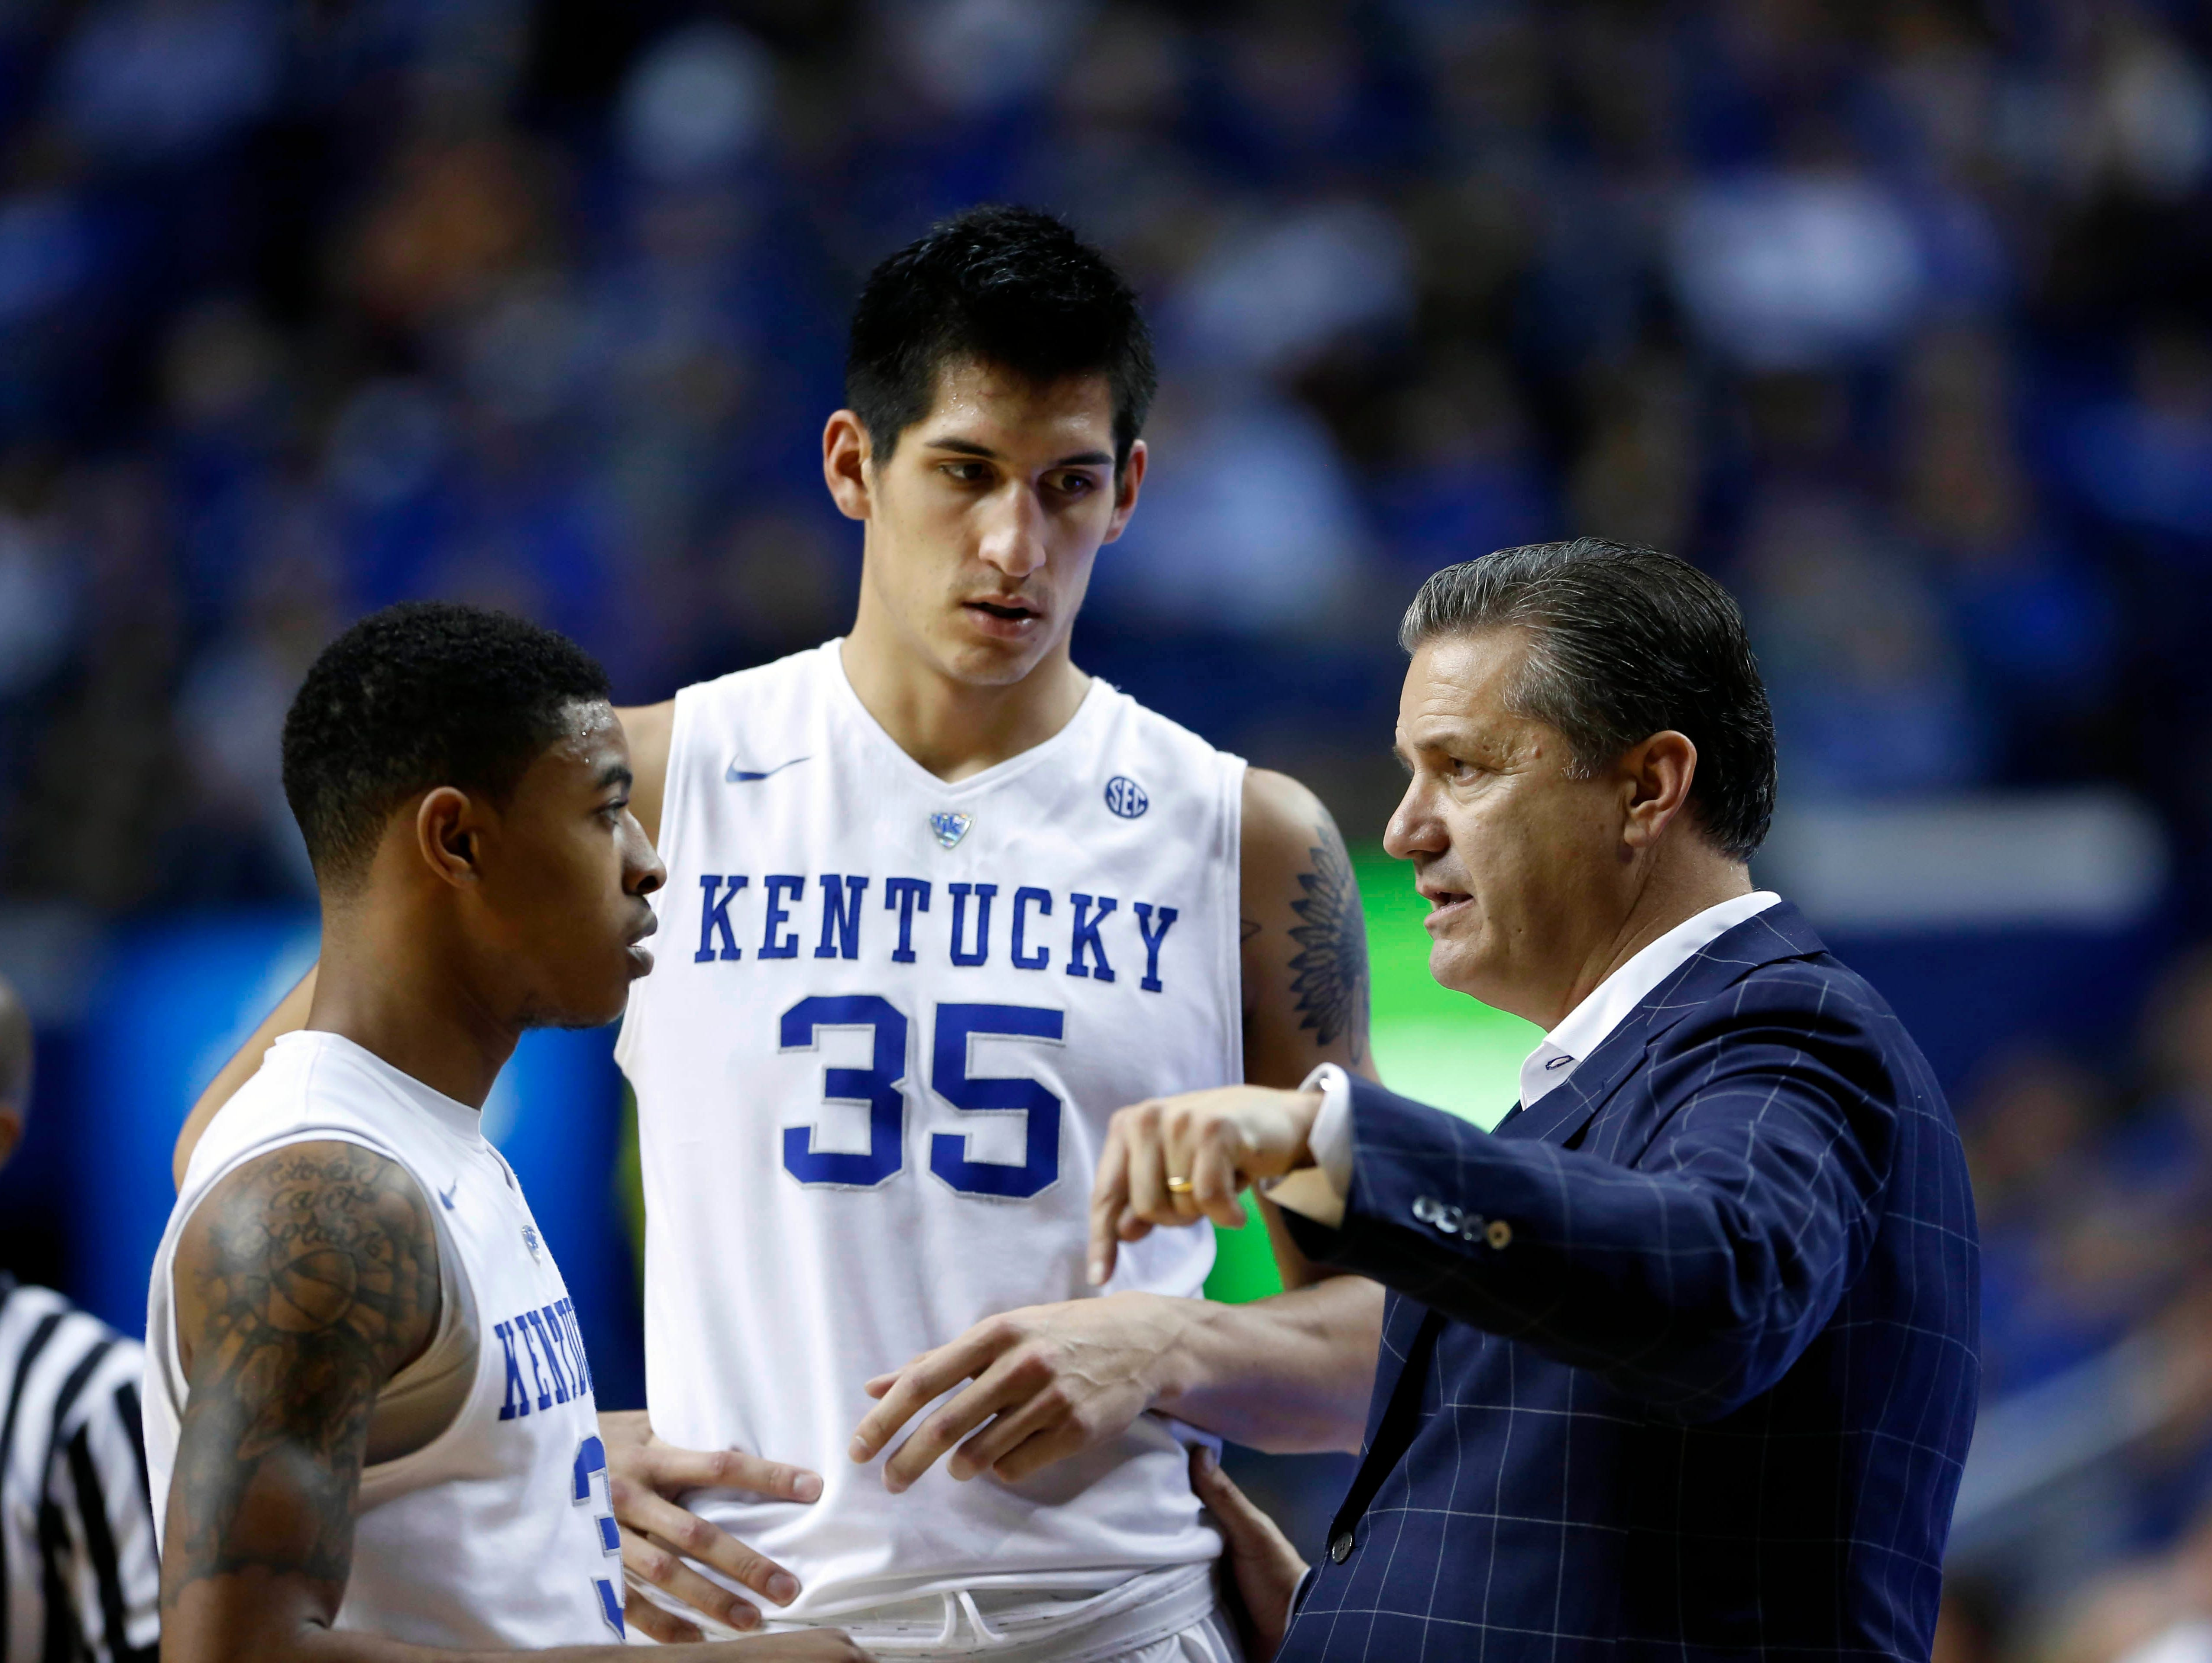 Nov 6, 2015; Lexington, KY, USA; Kentucky Wildcats head coach John Calipari talks with forward Derek Willis (35) and guard Tyler Ulis (3) during the game against the Kentucky State Thorobreds in the second half at Rupp Arena. Kentucky defeated Kentucky State 111-58.